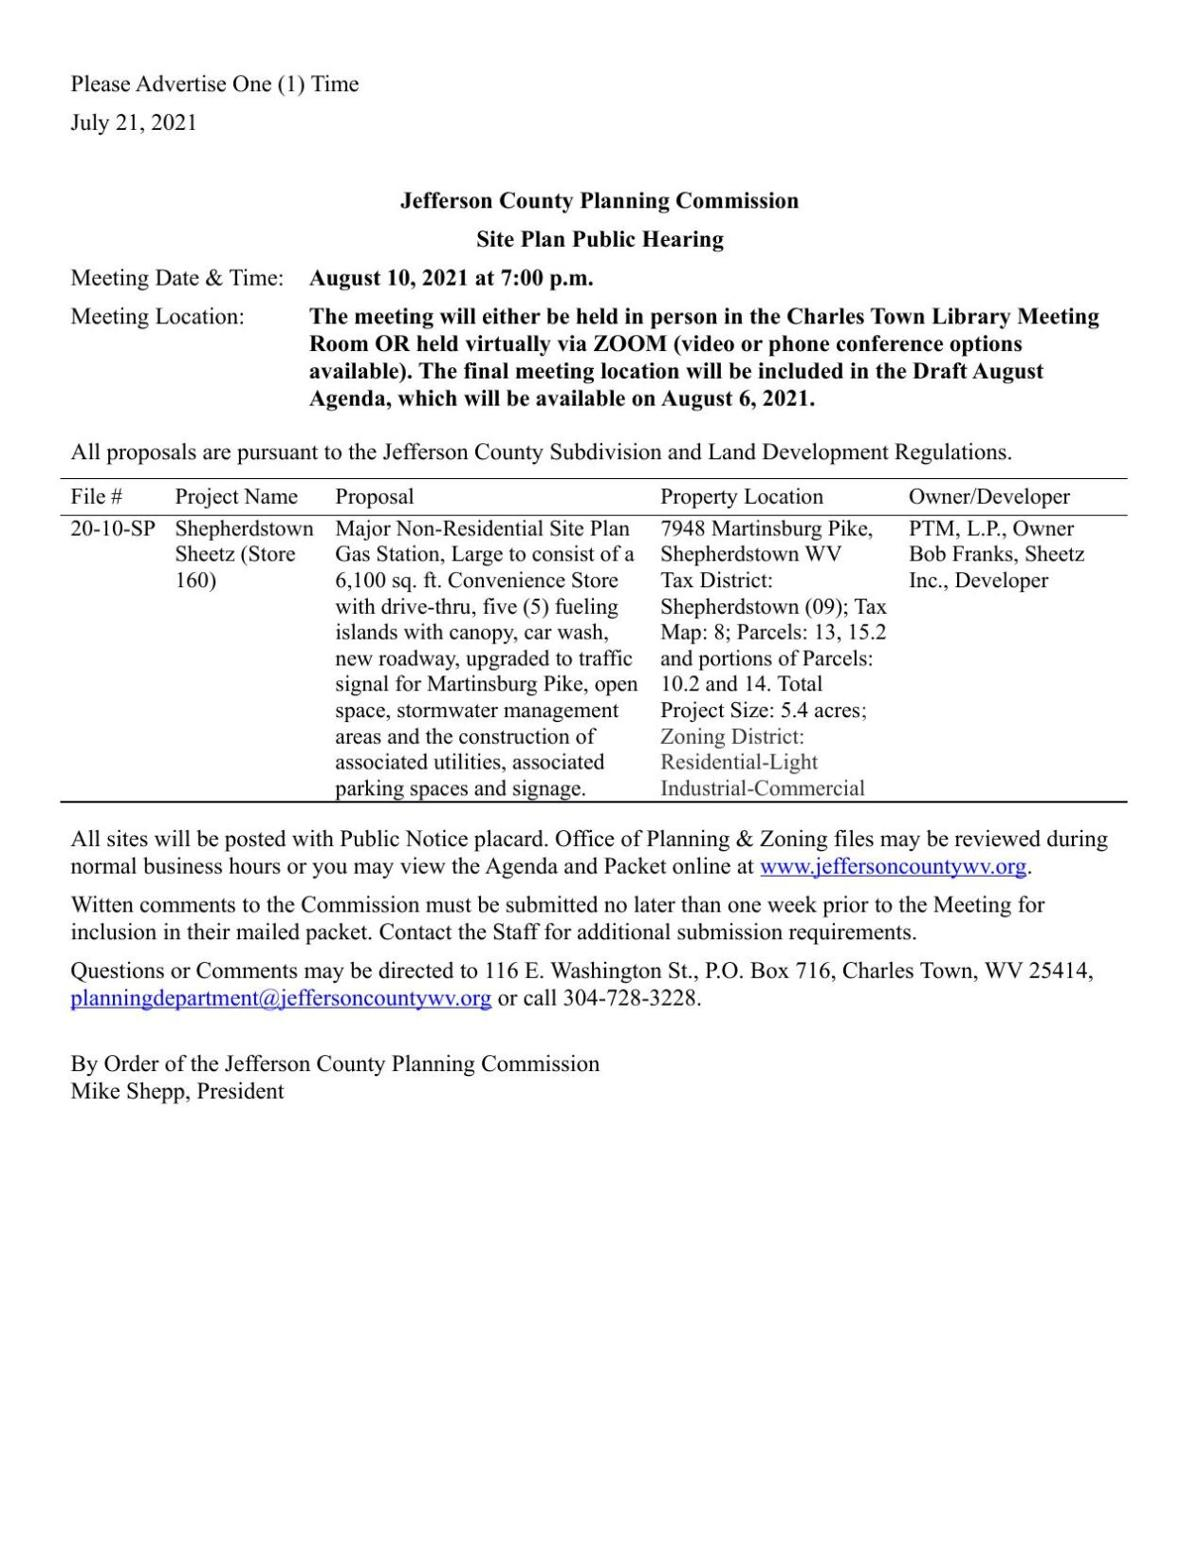 Jefferson County Planning Commission Site Plan Public Hearing